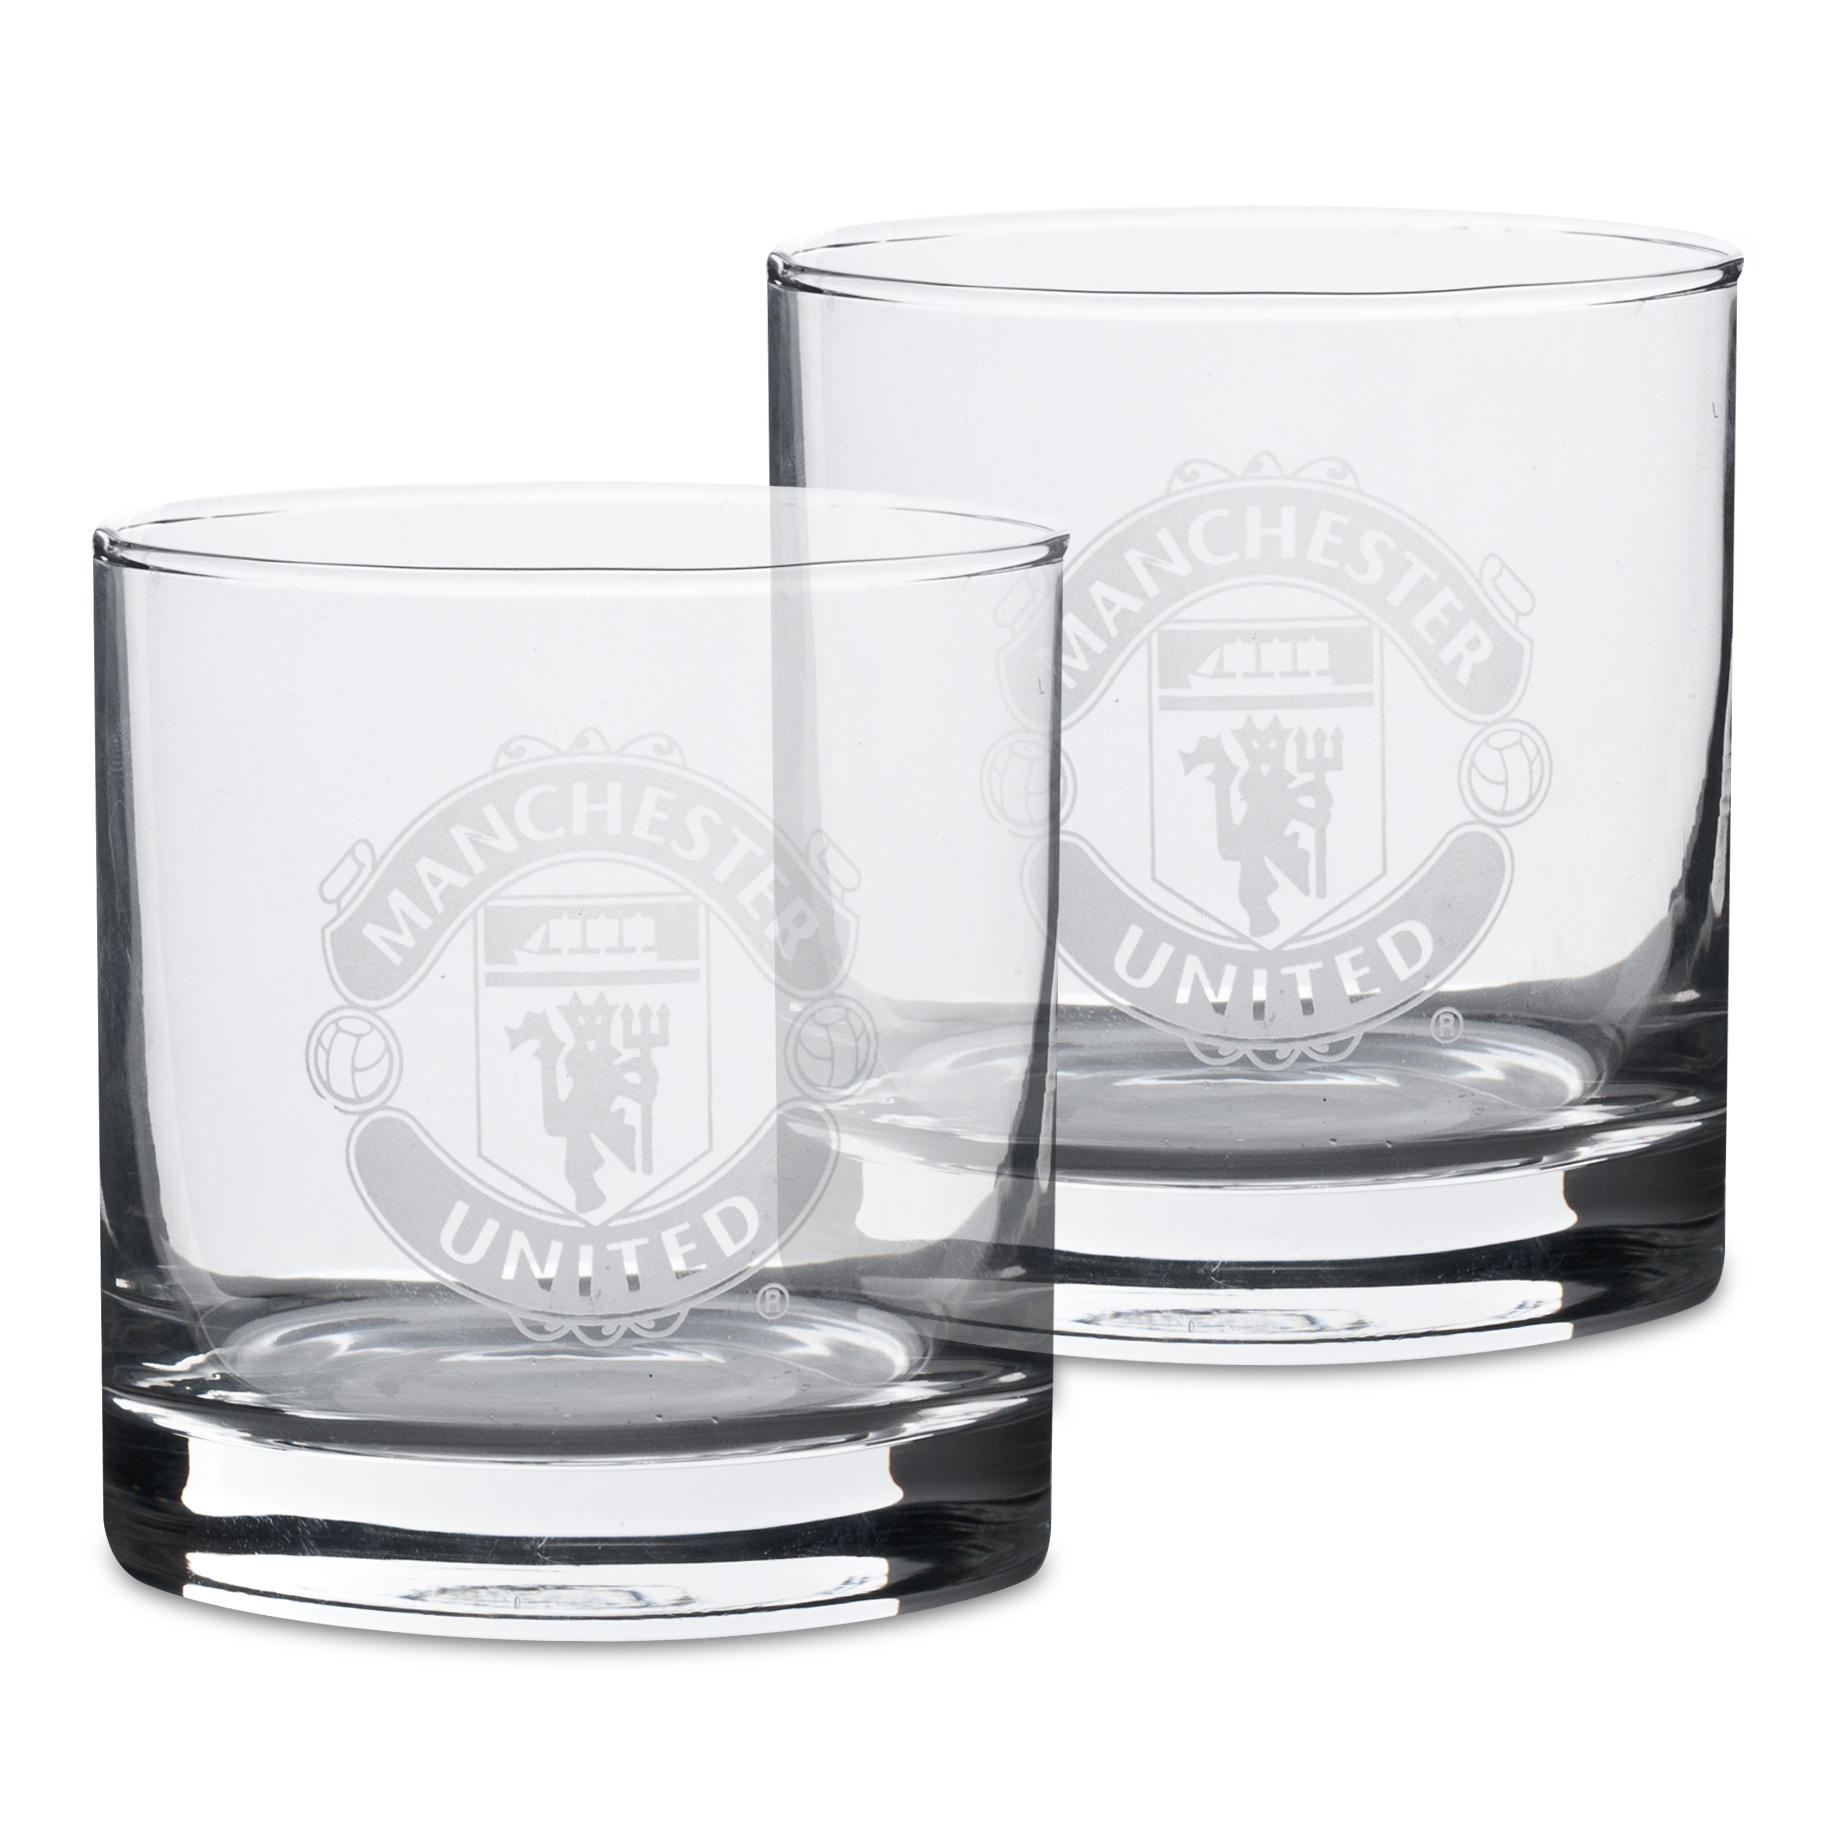 Manchester United Whiskey Glasses - 2 Pack